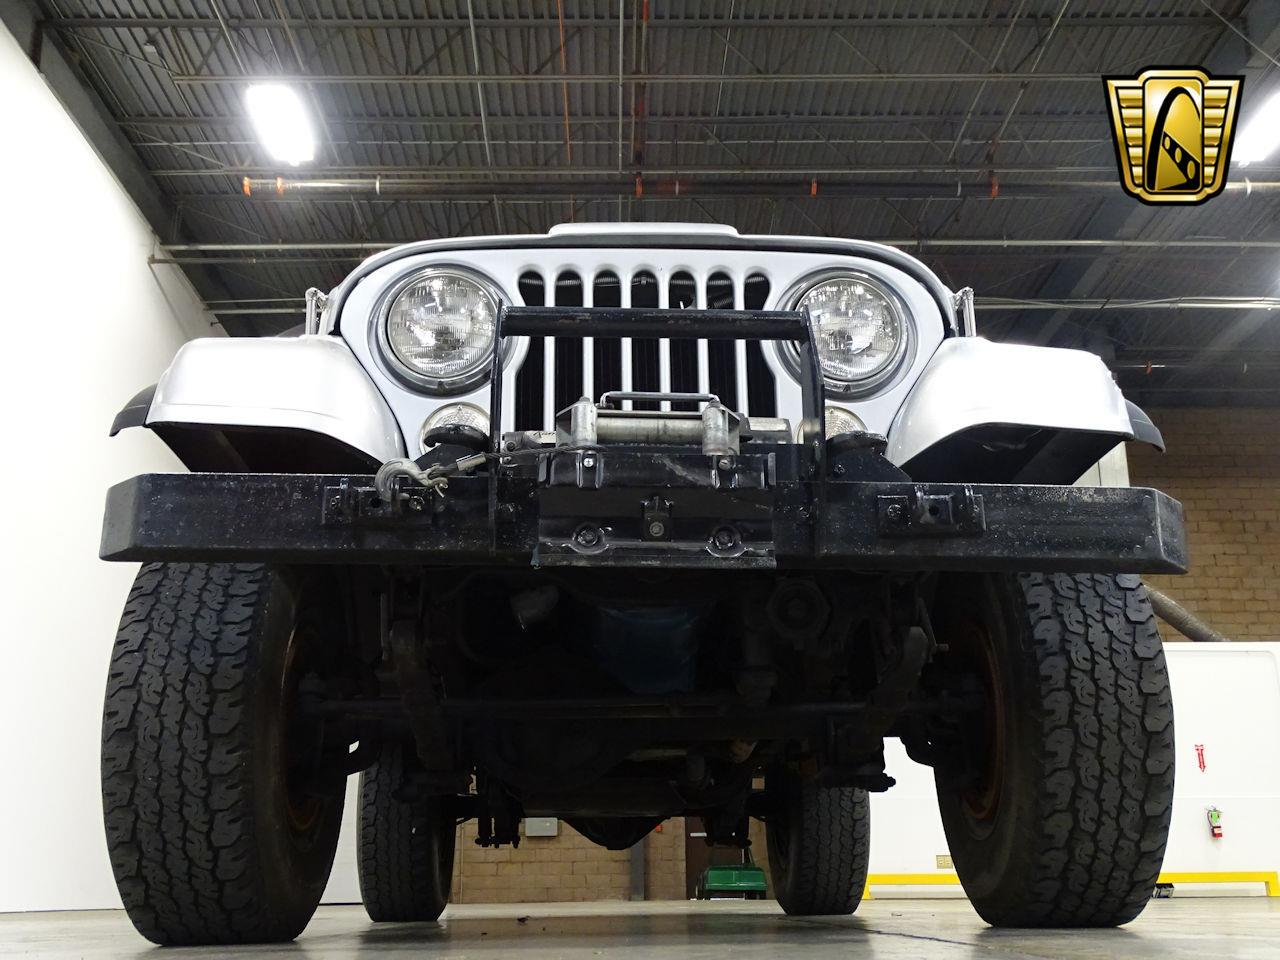 Large Picture of 1975 Jeep CJ5 located in West Deptford New Jersey Offered by Gateway Classic Cars - Philadelphia - MDQG